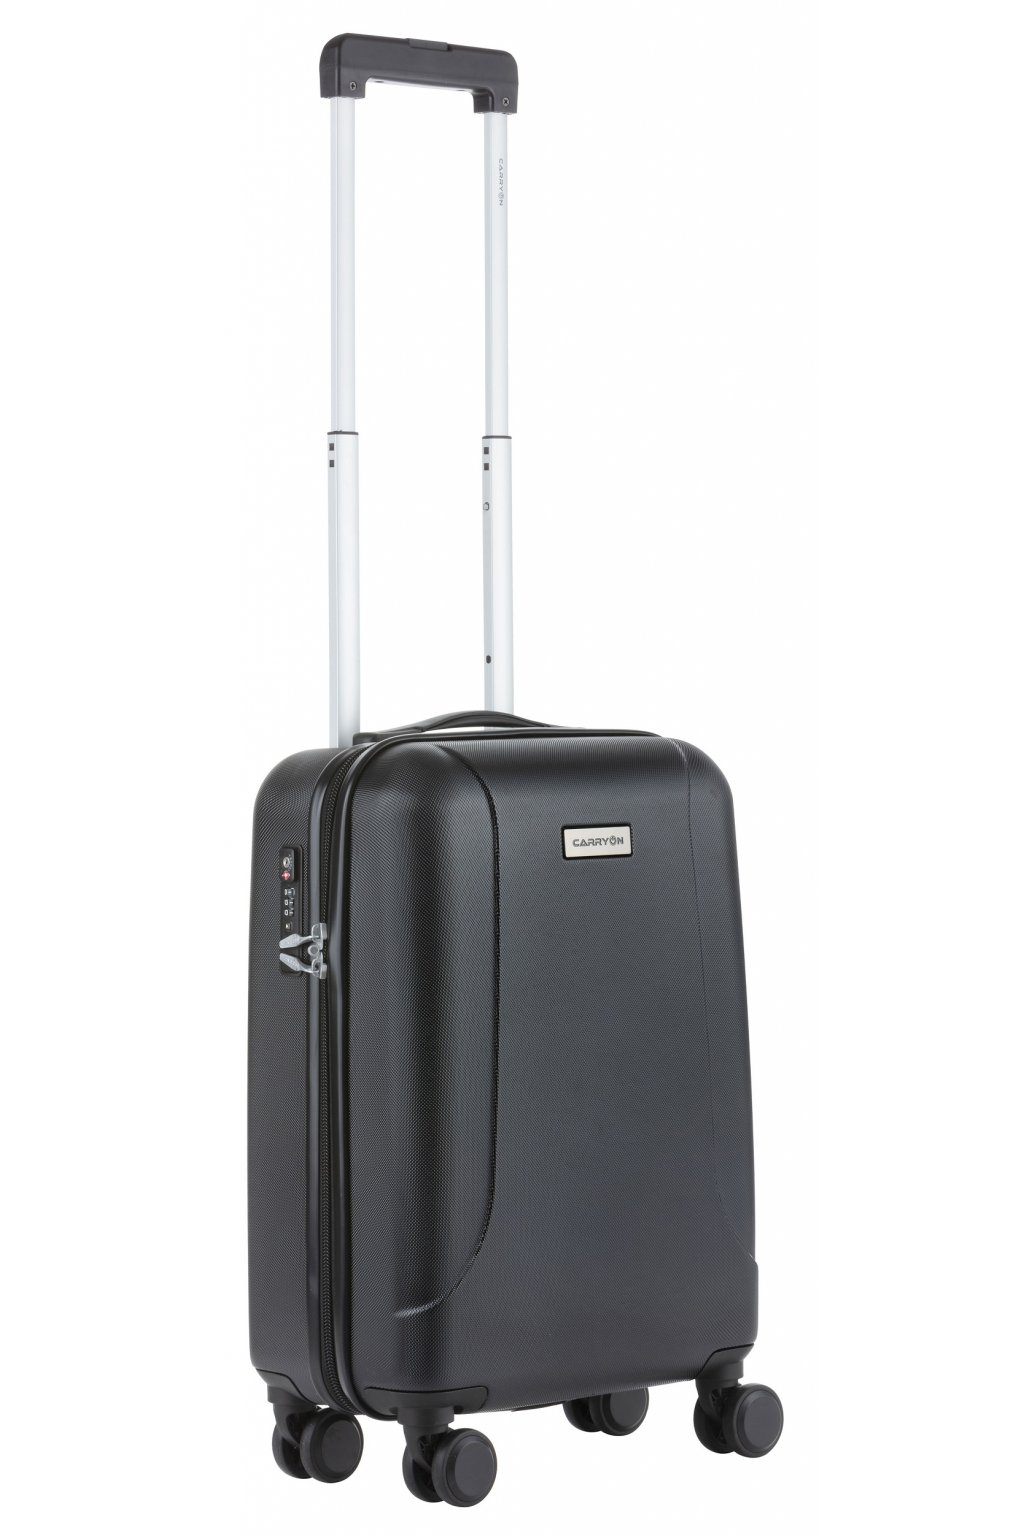 kufrland carryon skyhopper black (5)